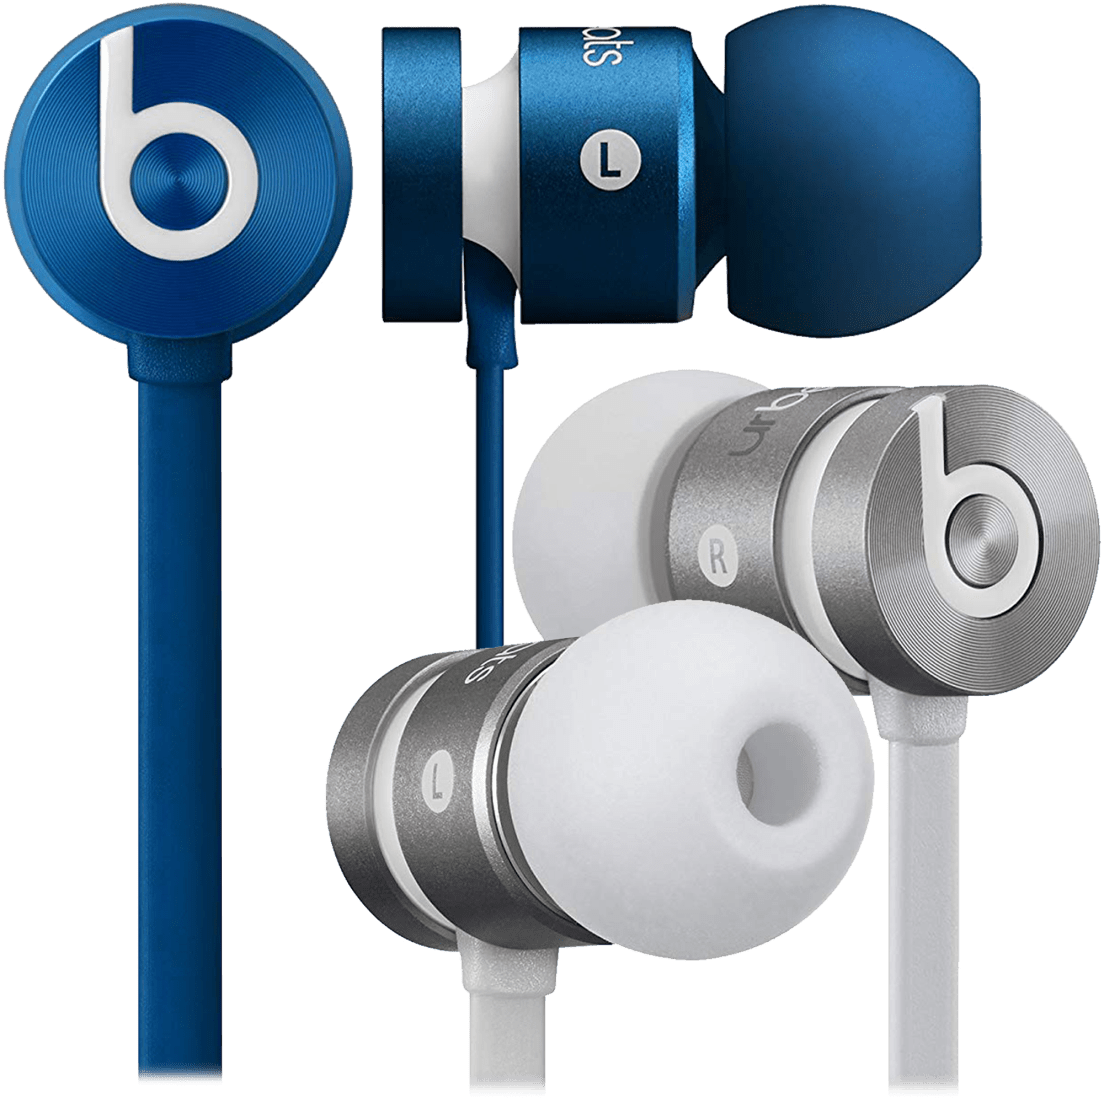 Beats By Dr Dre Urbeats 2 Wired In Ear Headphones Certified Headset Bluetooth Super Bass Stn 13 Wereless Hanphone Monster Drdre Refurbished